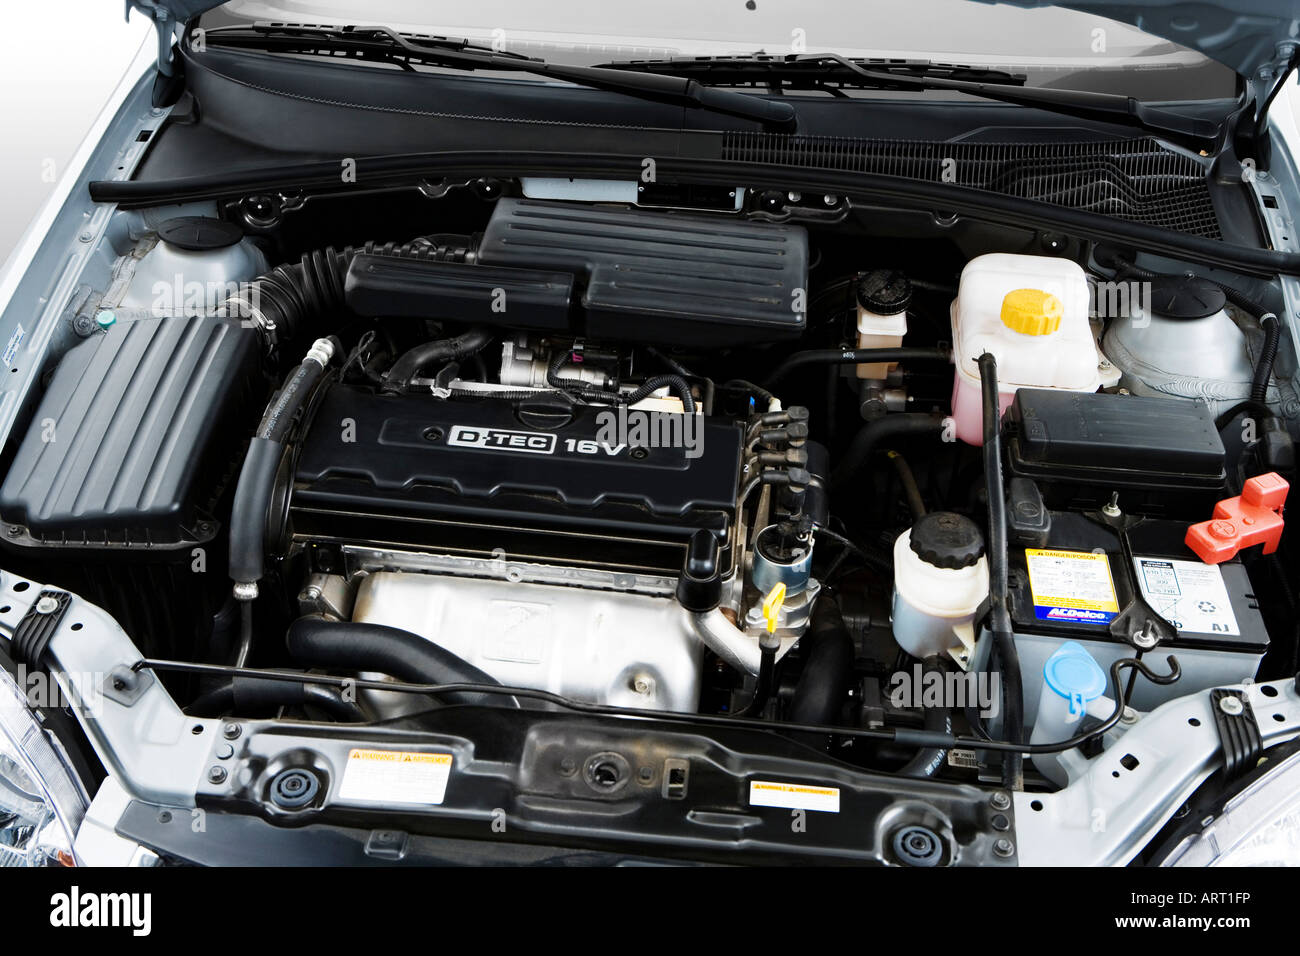 How To Change The Starter On A  Suzuki Forenza